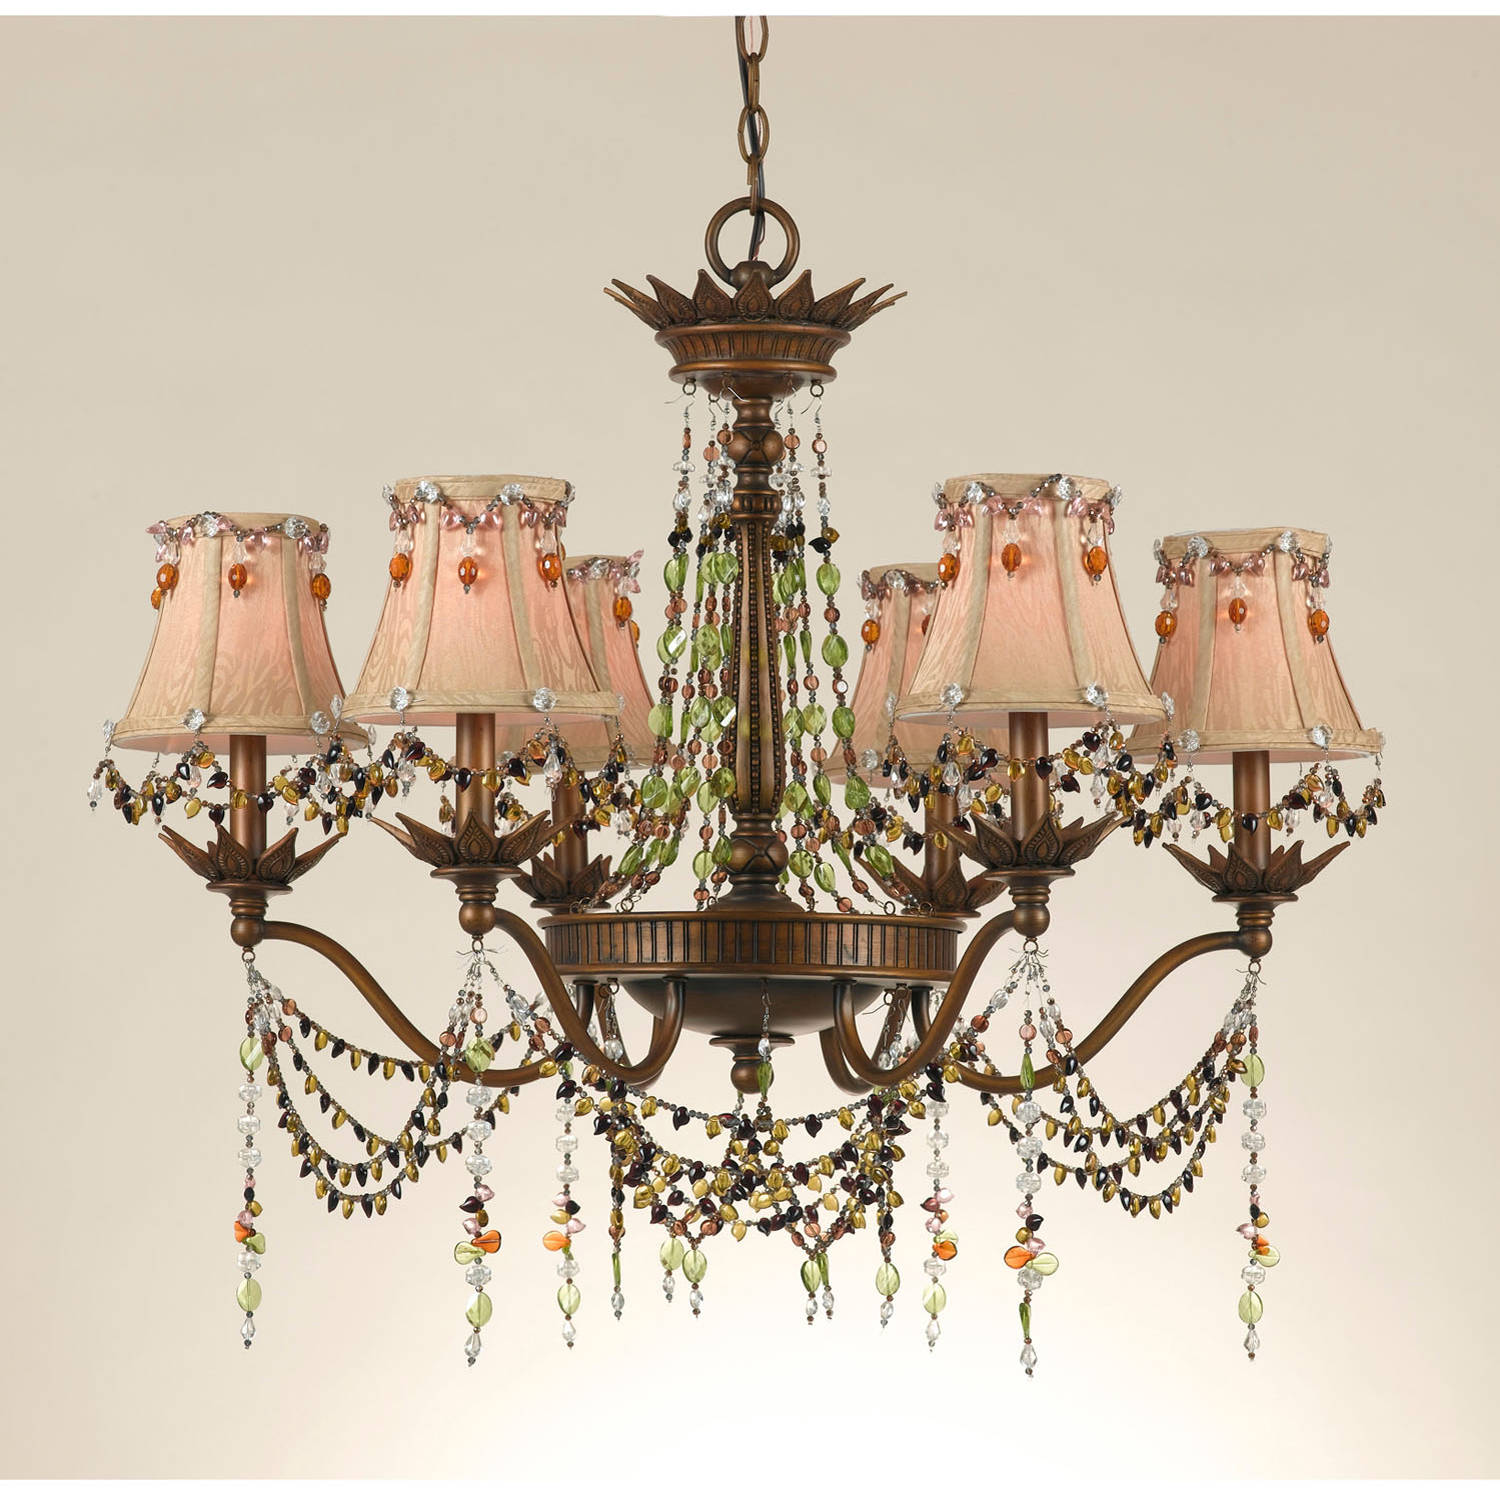 AF Lighting Tiara 6-Light Chandelier with Beaded Gold Jacquard Shades, Burnished Gold